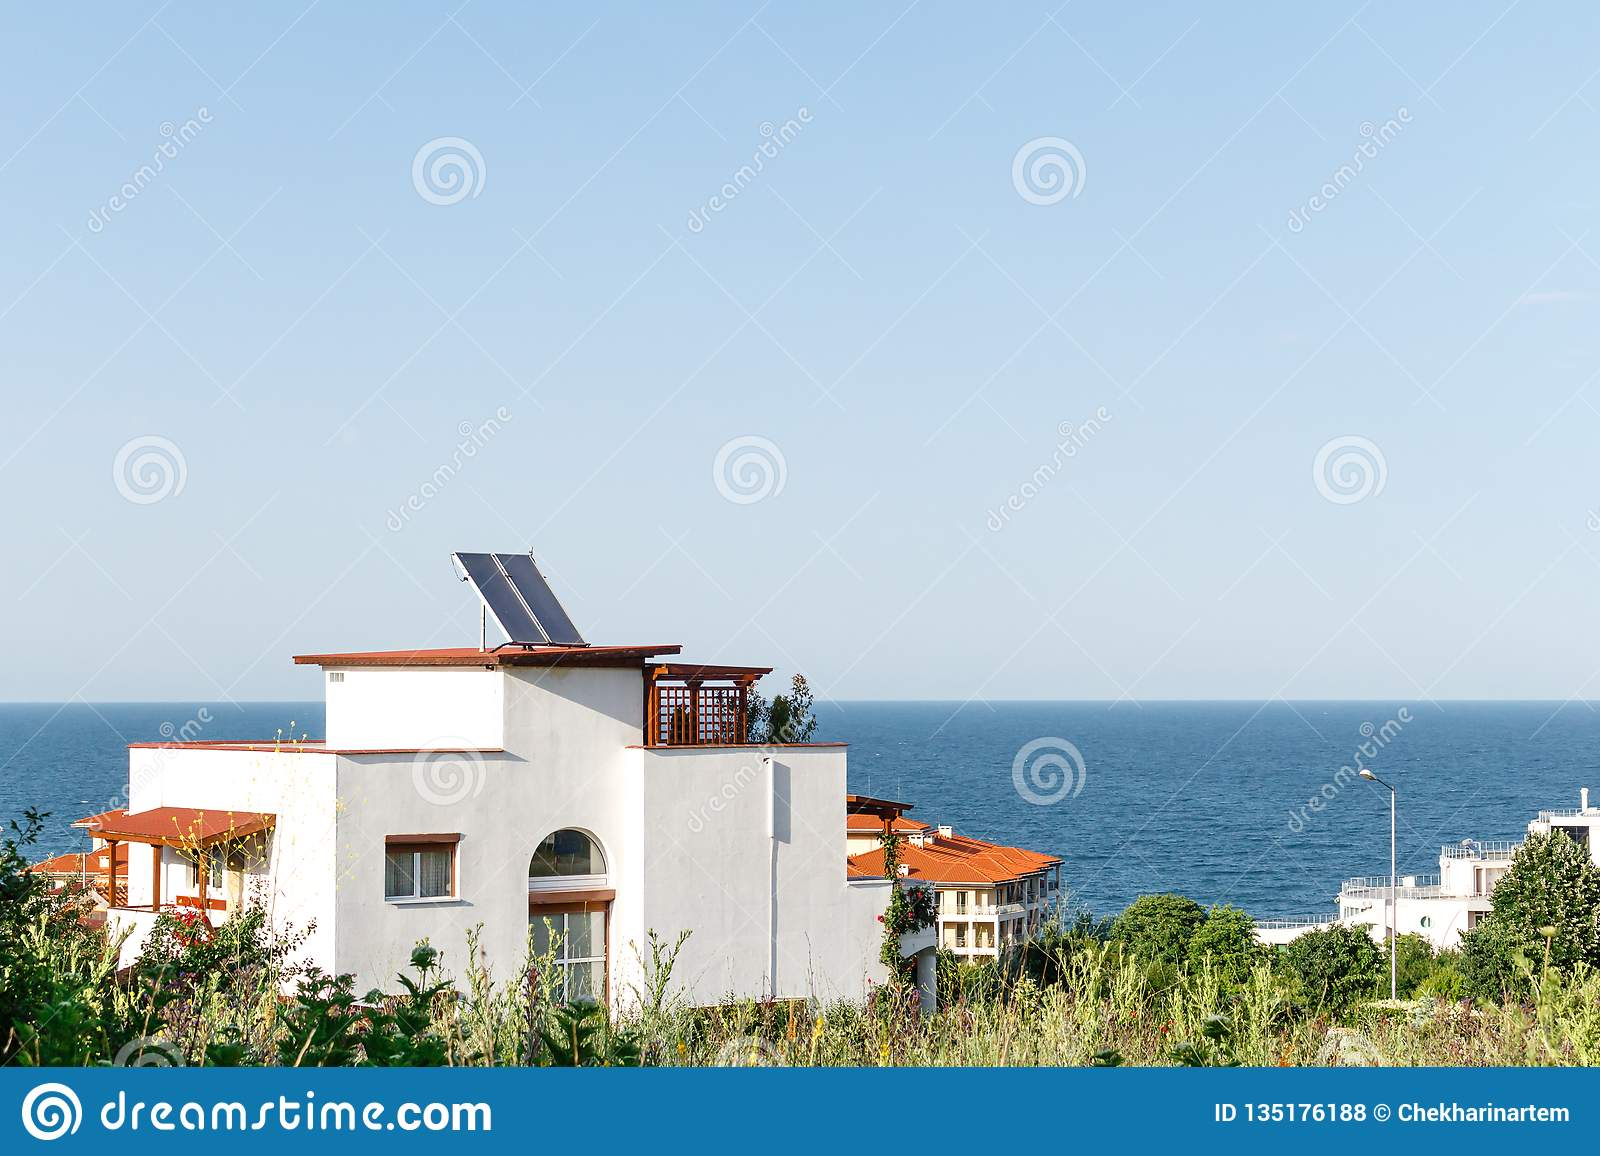 White house with solar water heating panel on the roof and sea background against blue sky. Byala, Bulgaria.